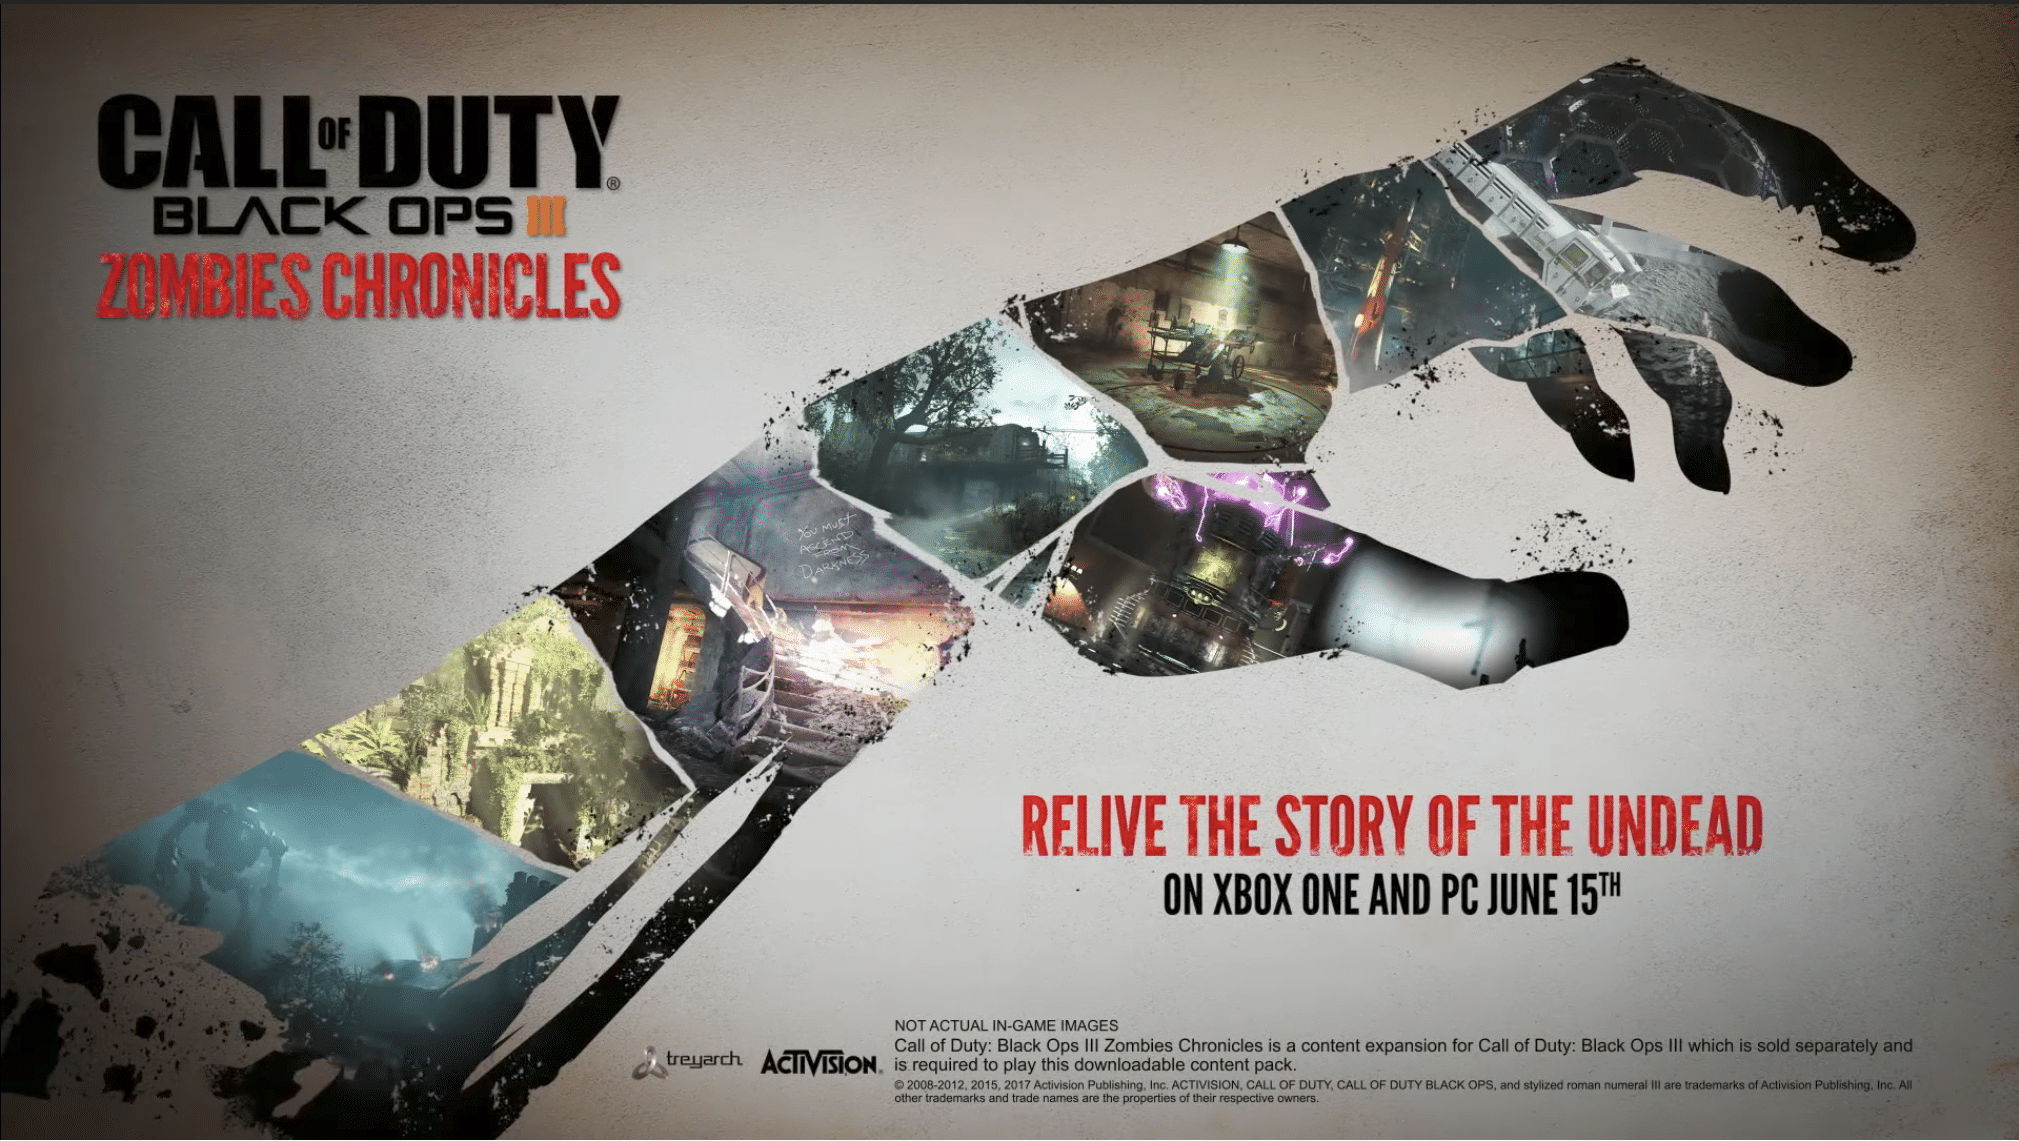 Call of Duty Black Ops 3 Zombies Chronicles available June 15 on